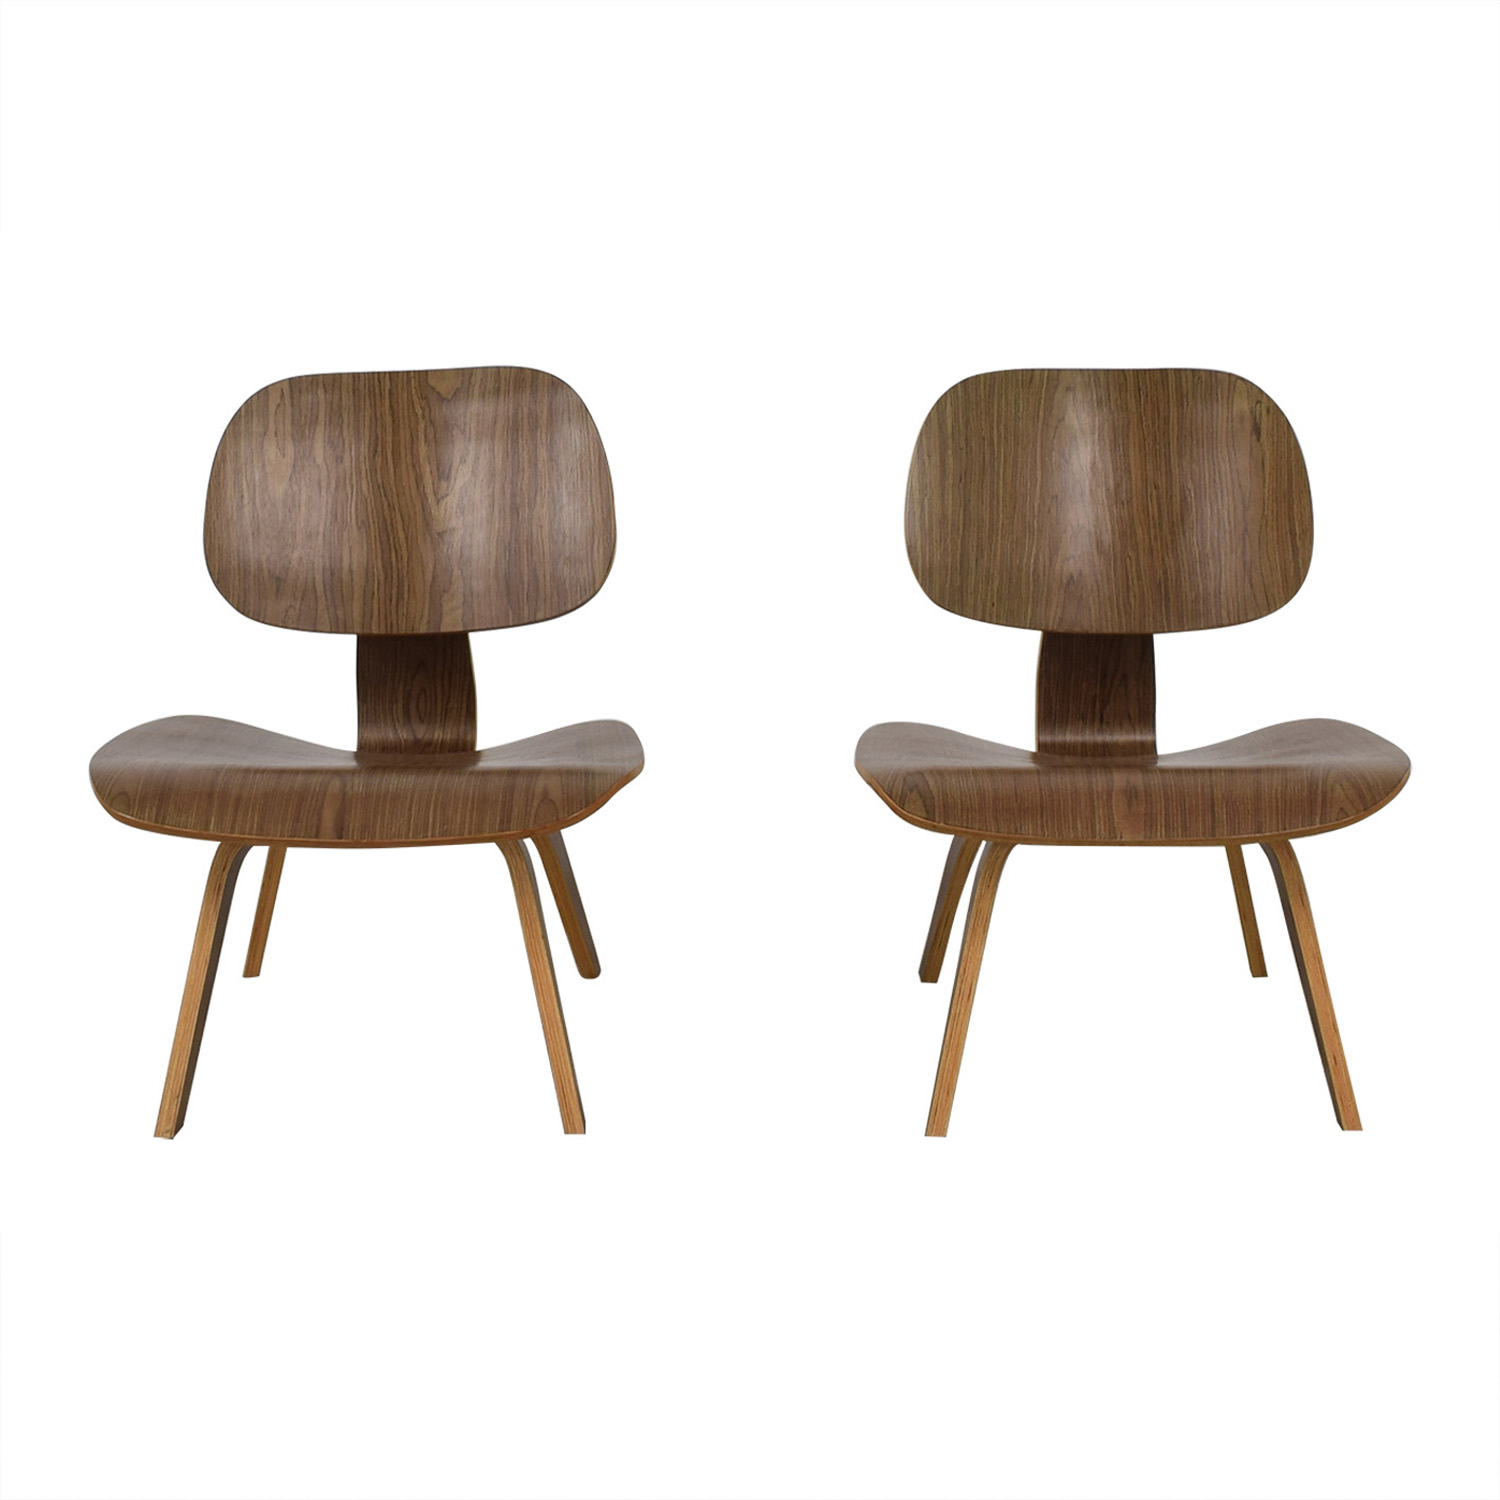 Modway Modway Natural Fathom Plywood Dining Chairs price